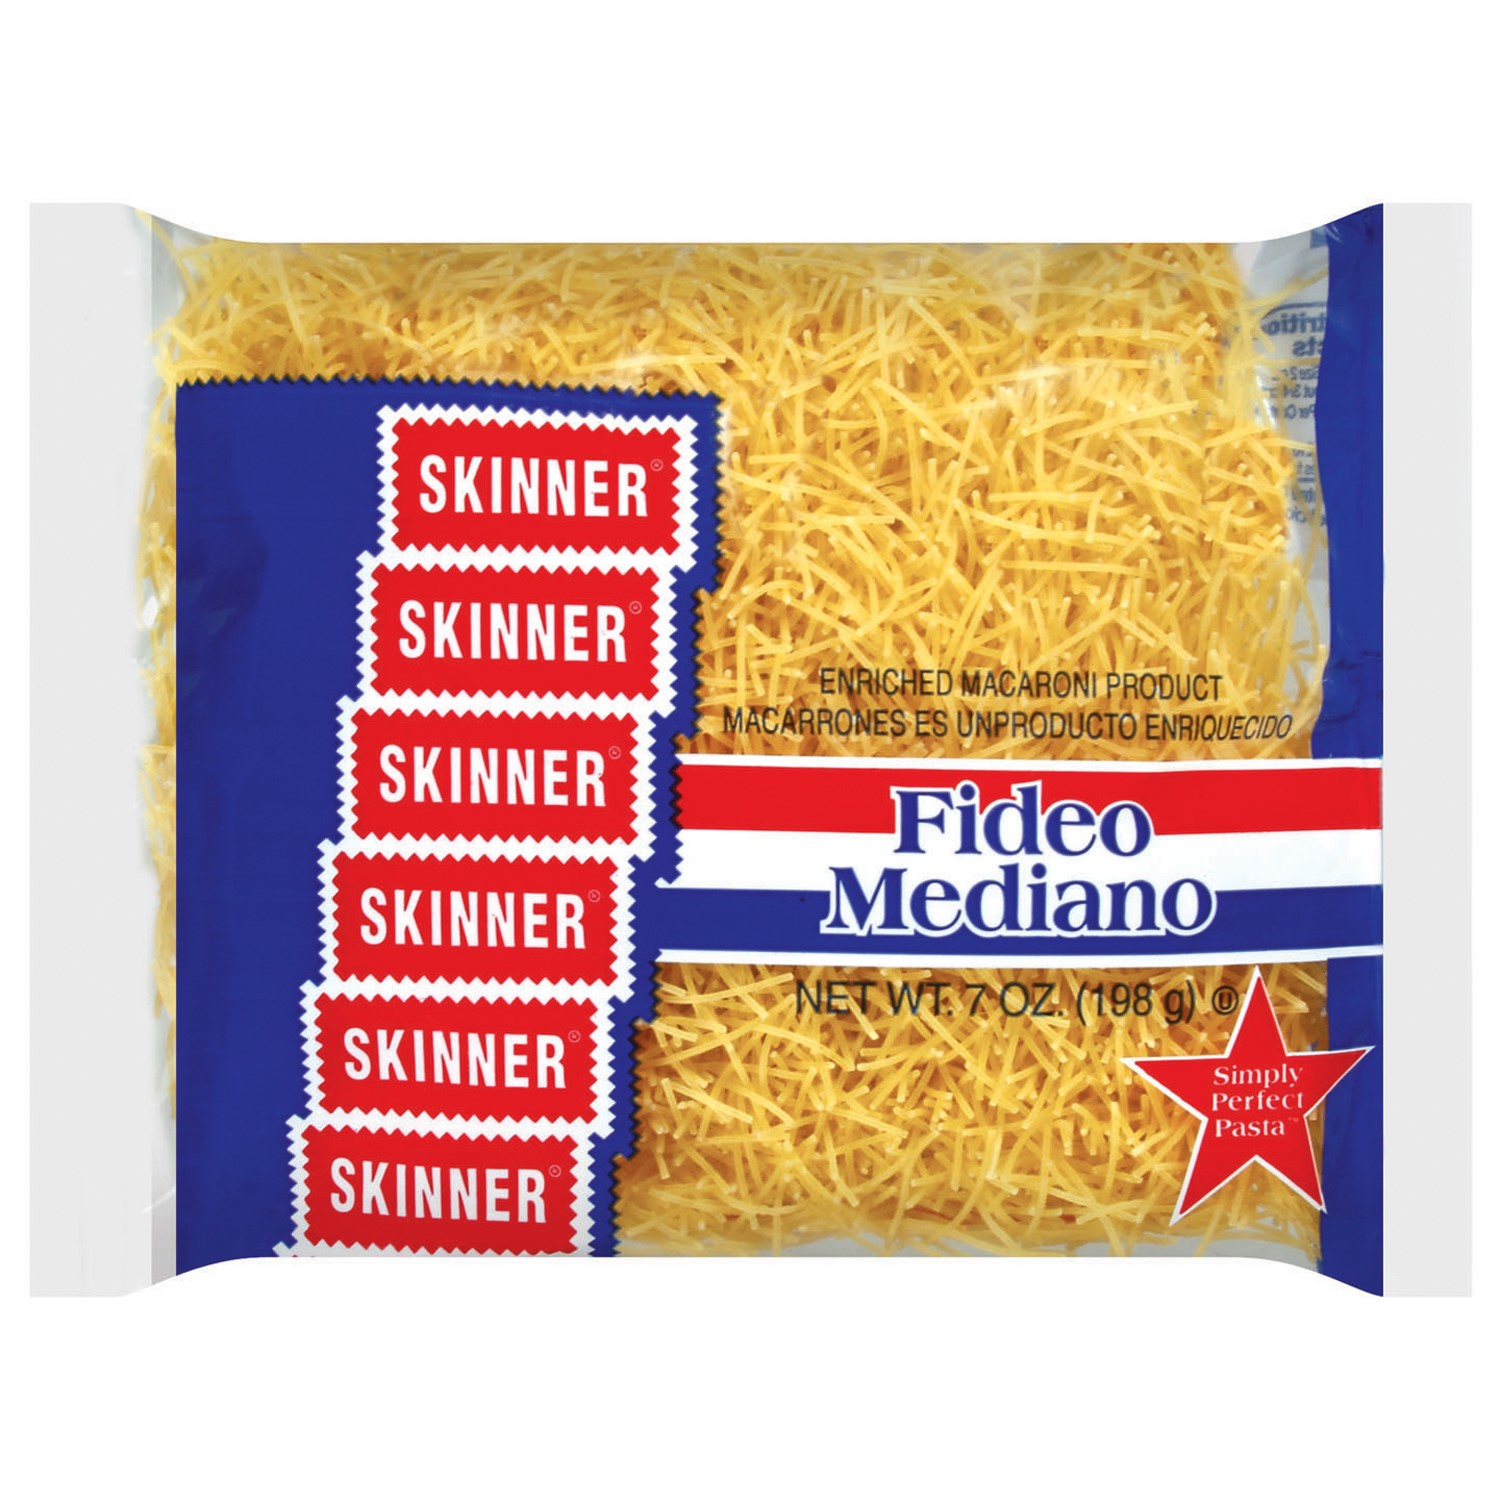 (6 Pack) Skinner Pasta, Fideo Mediano, 7 Oz